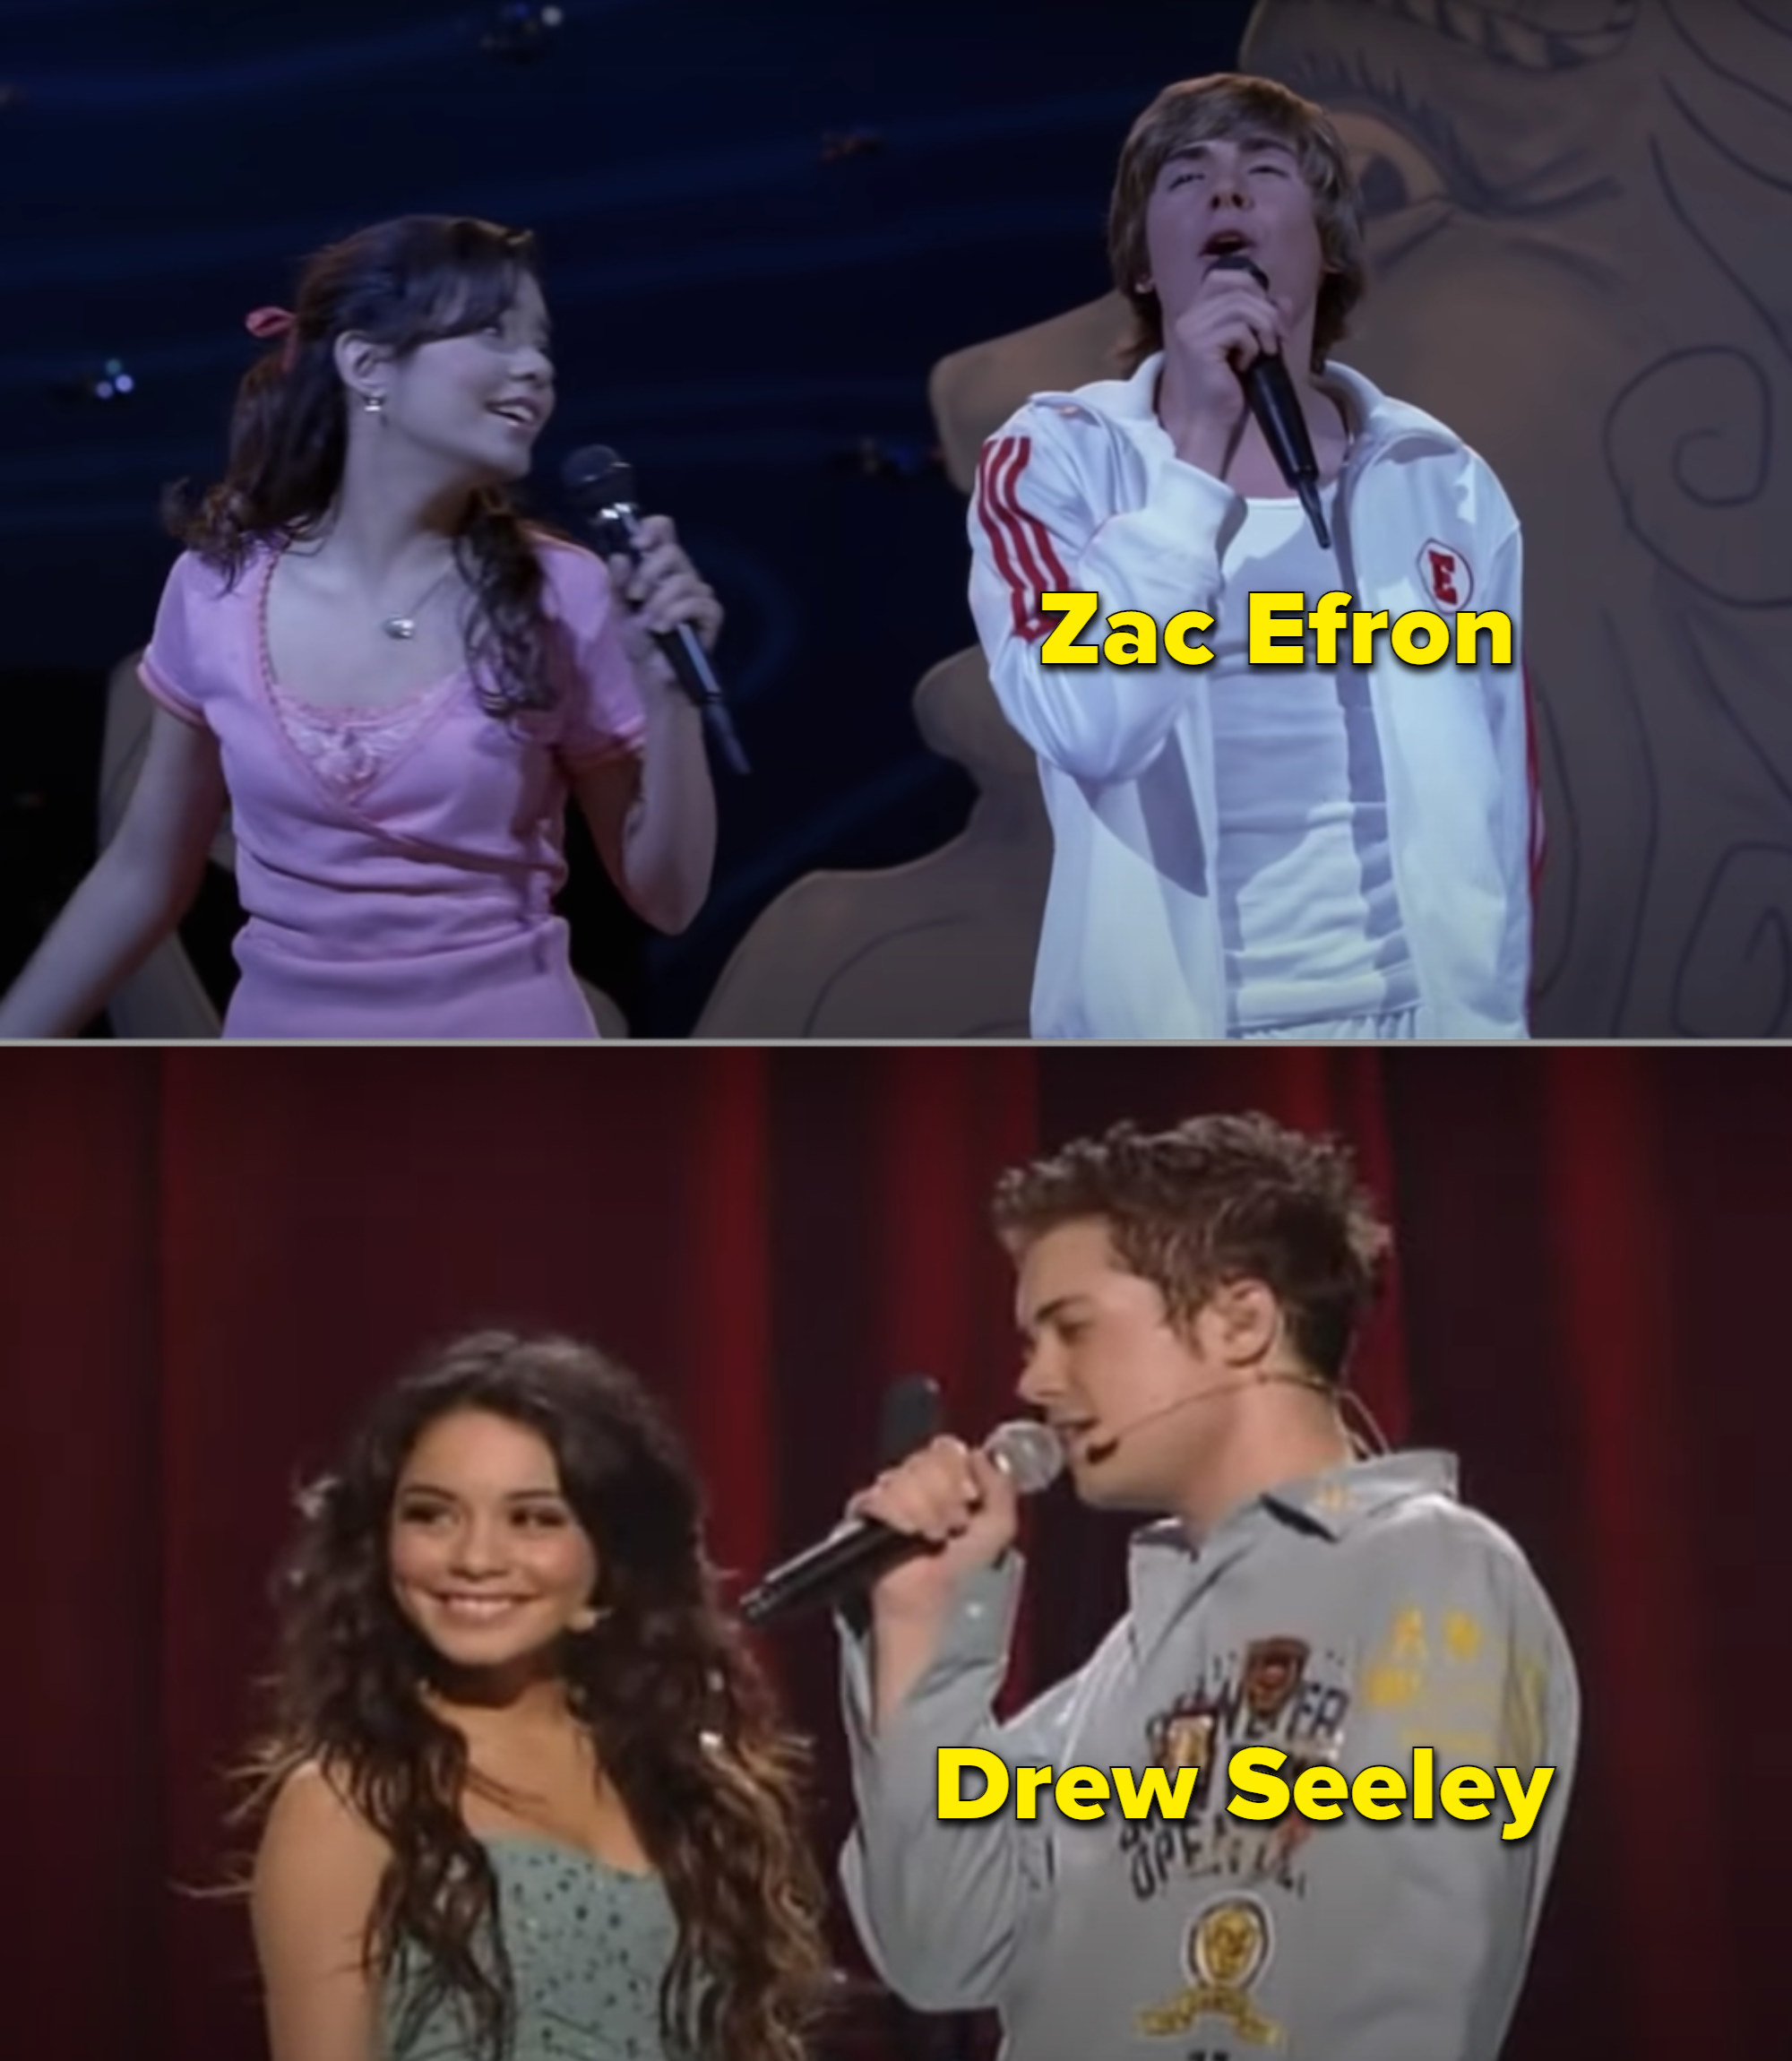 Zac Efron and Drew Seeley singing separately with Vanessa Hudgens